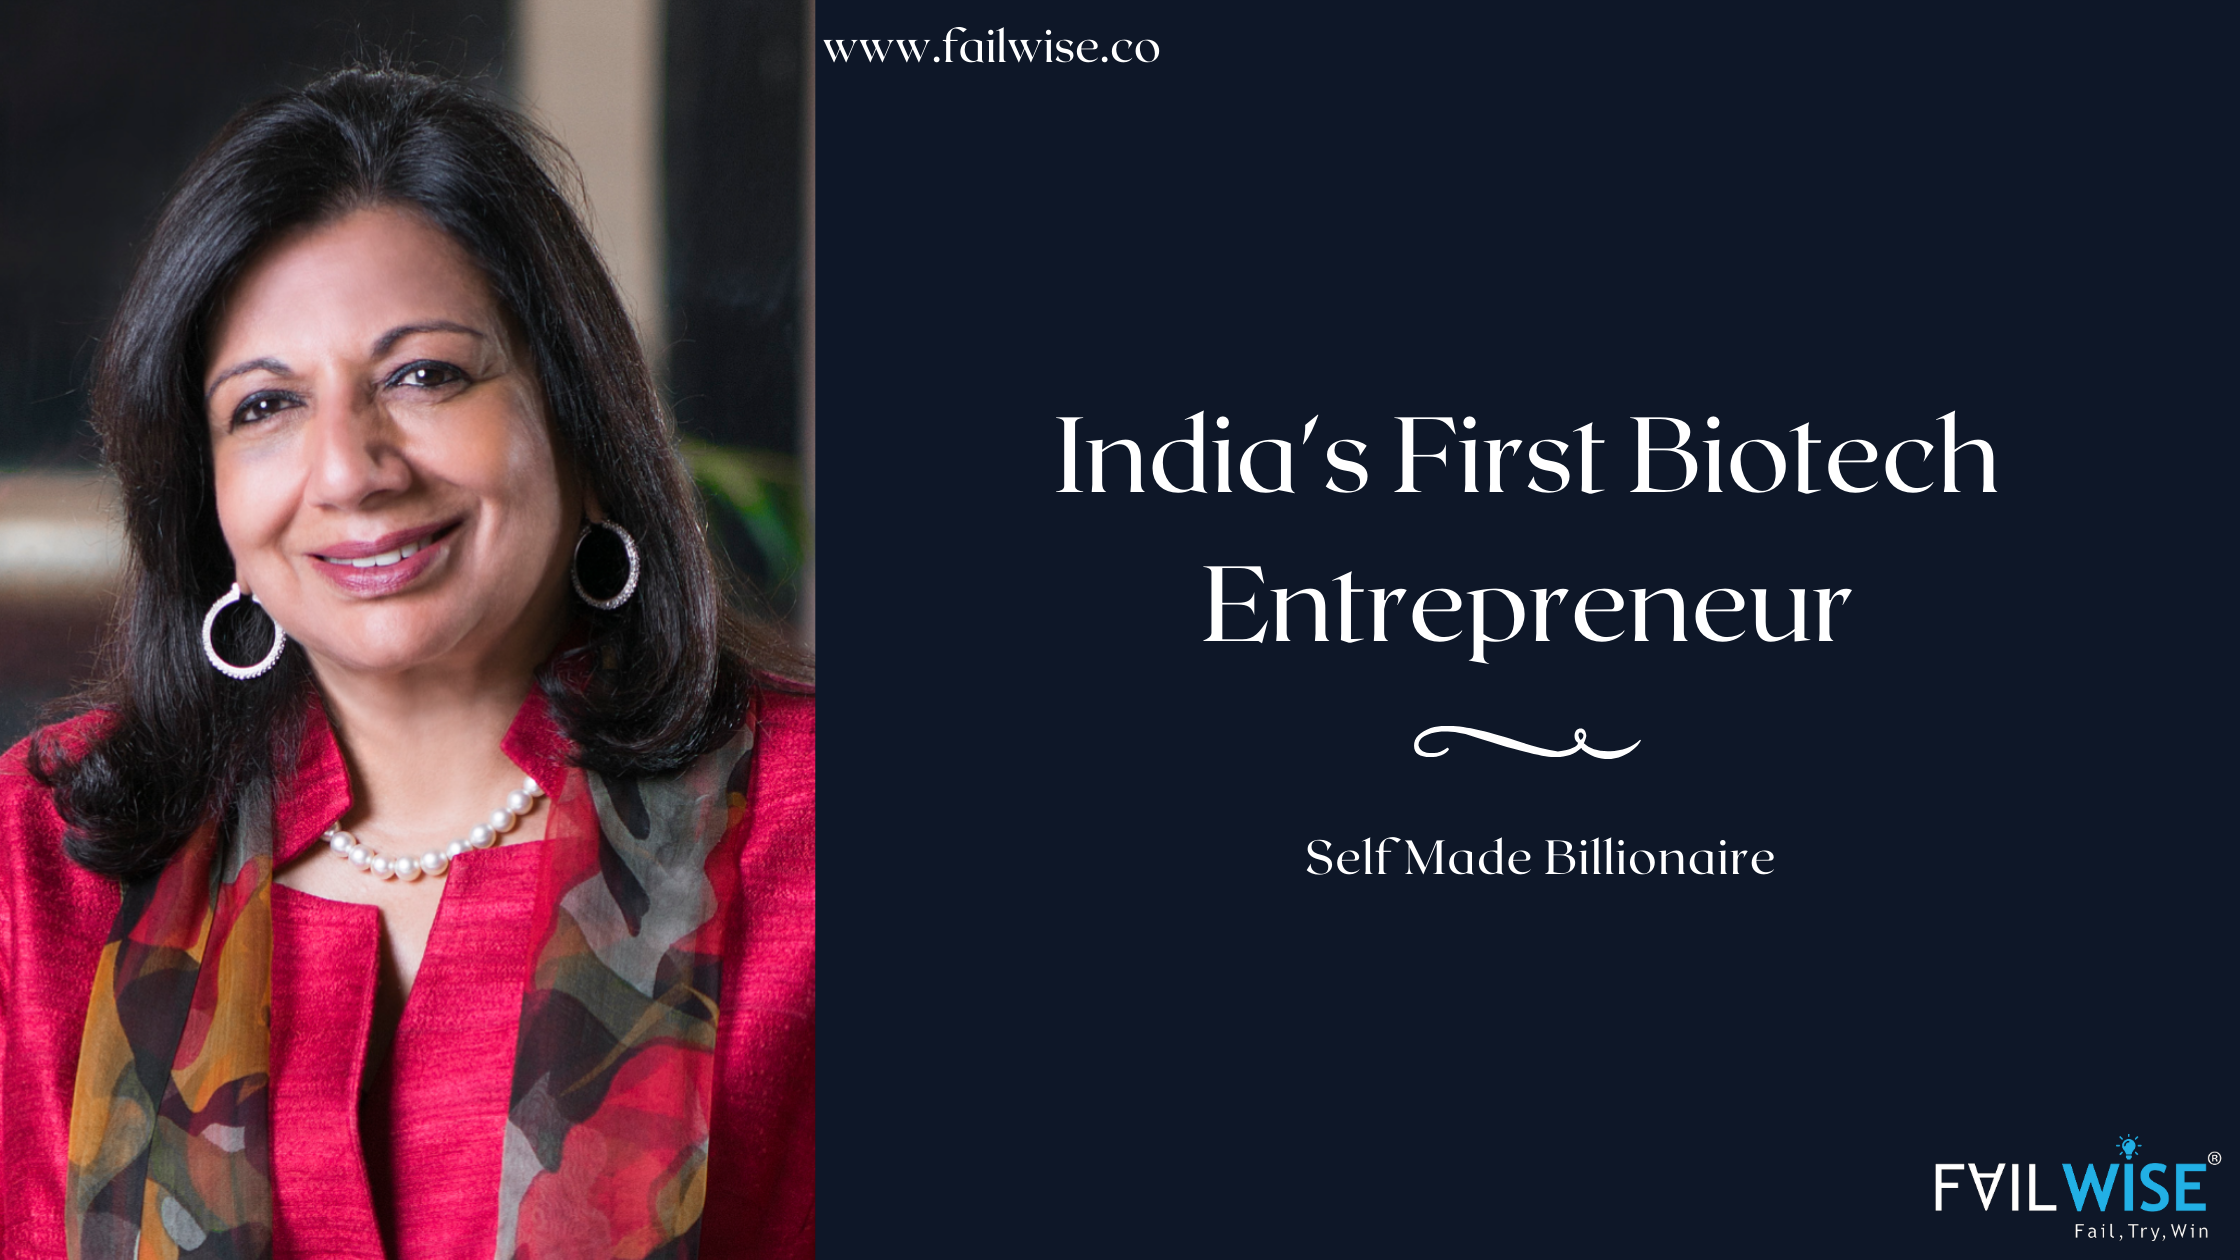 Kiran Mazumdar Shaw: How She Became the First Billionaire Woman of India?